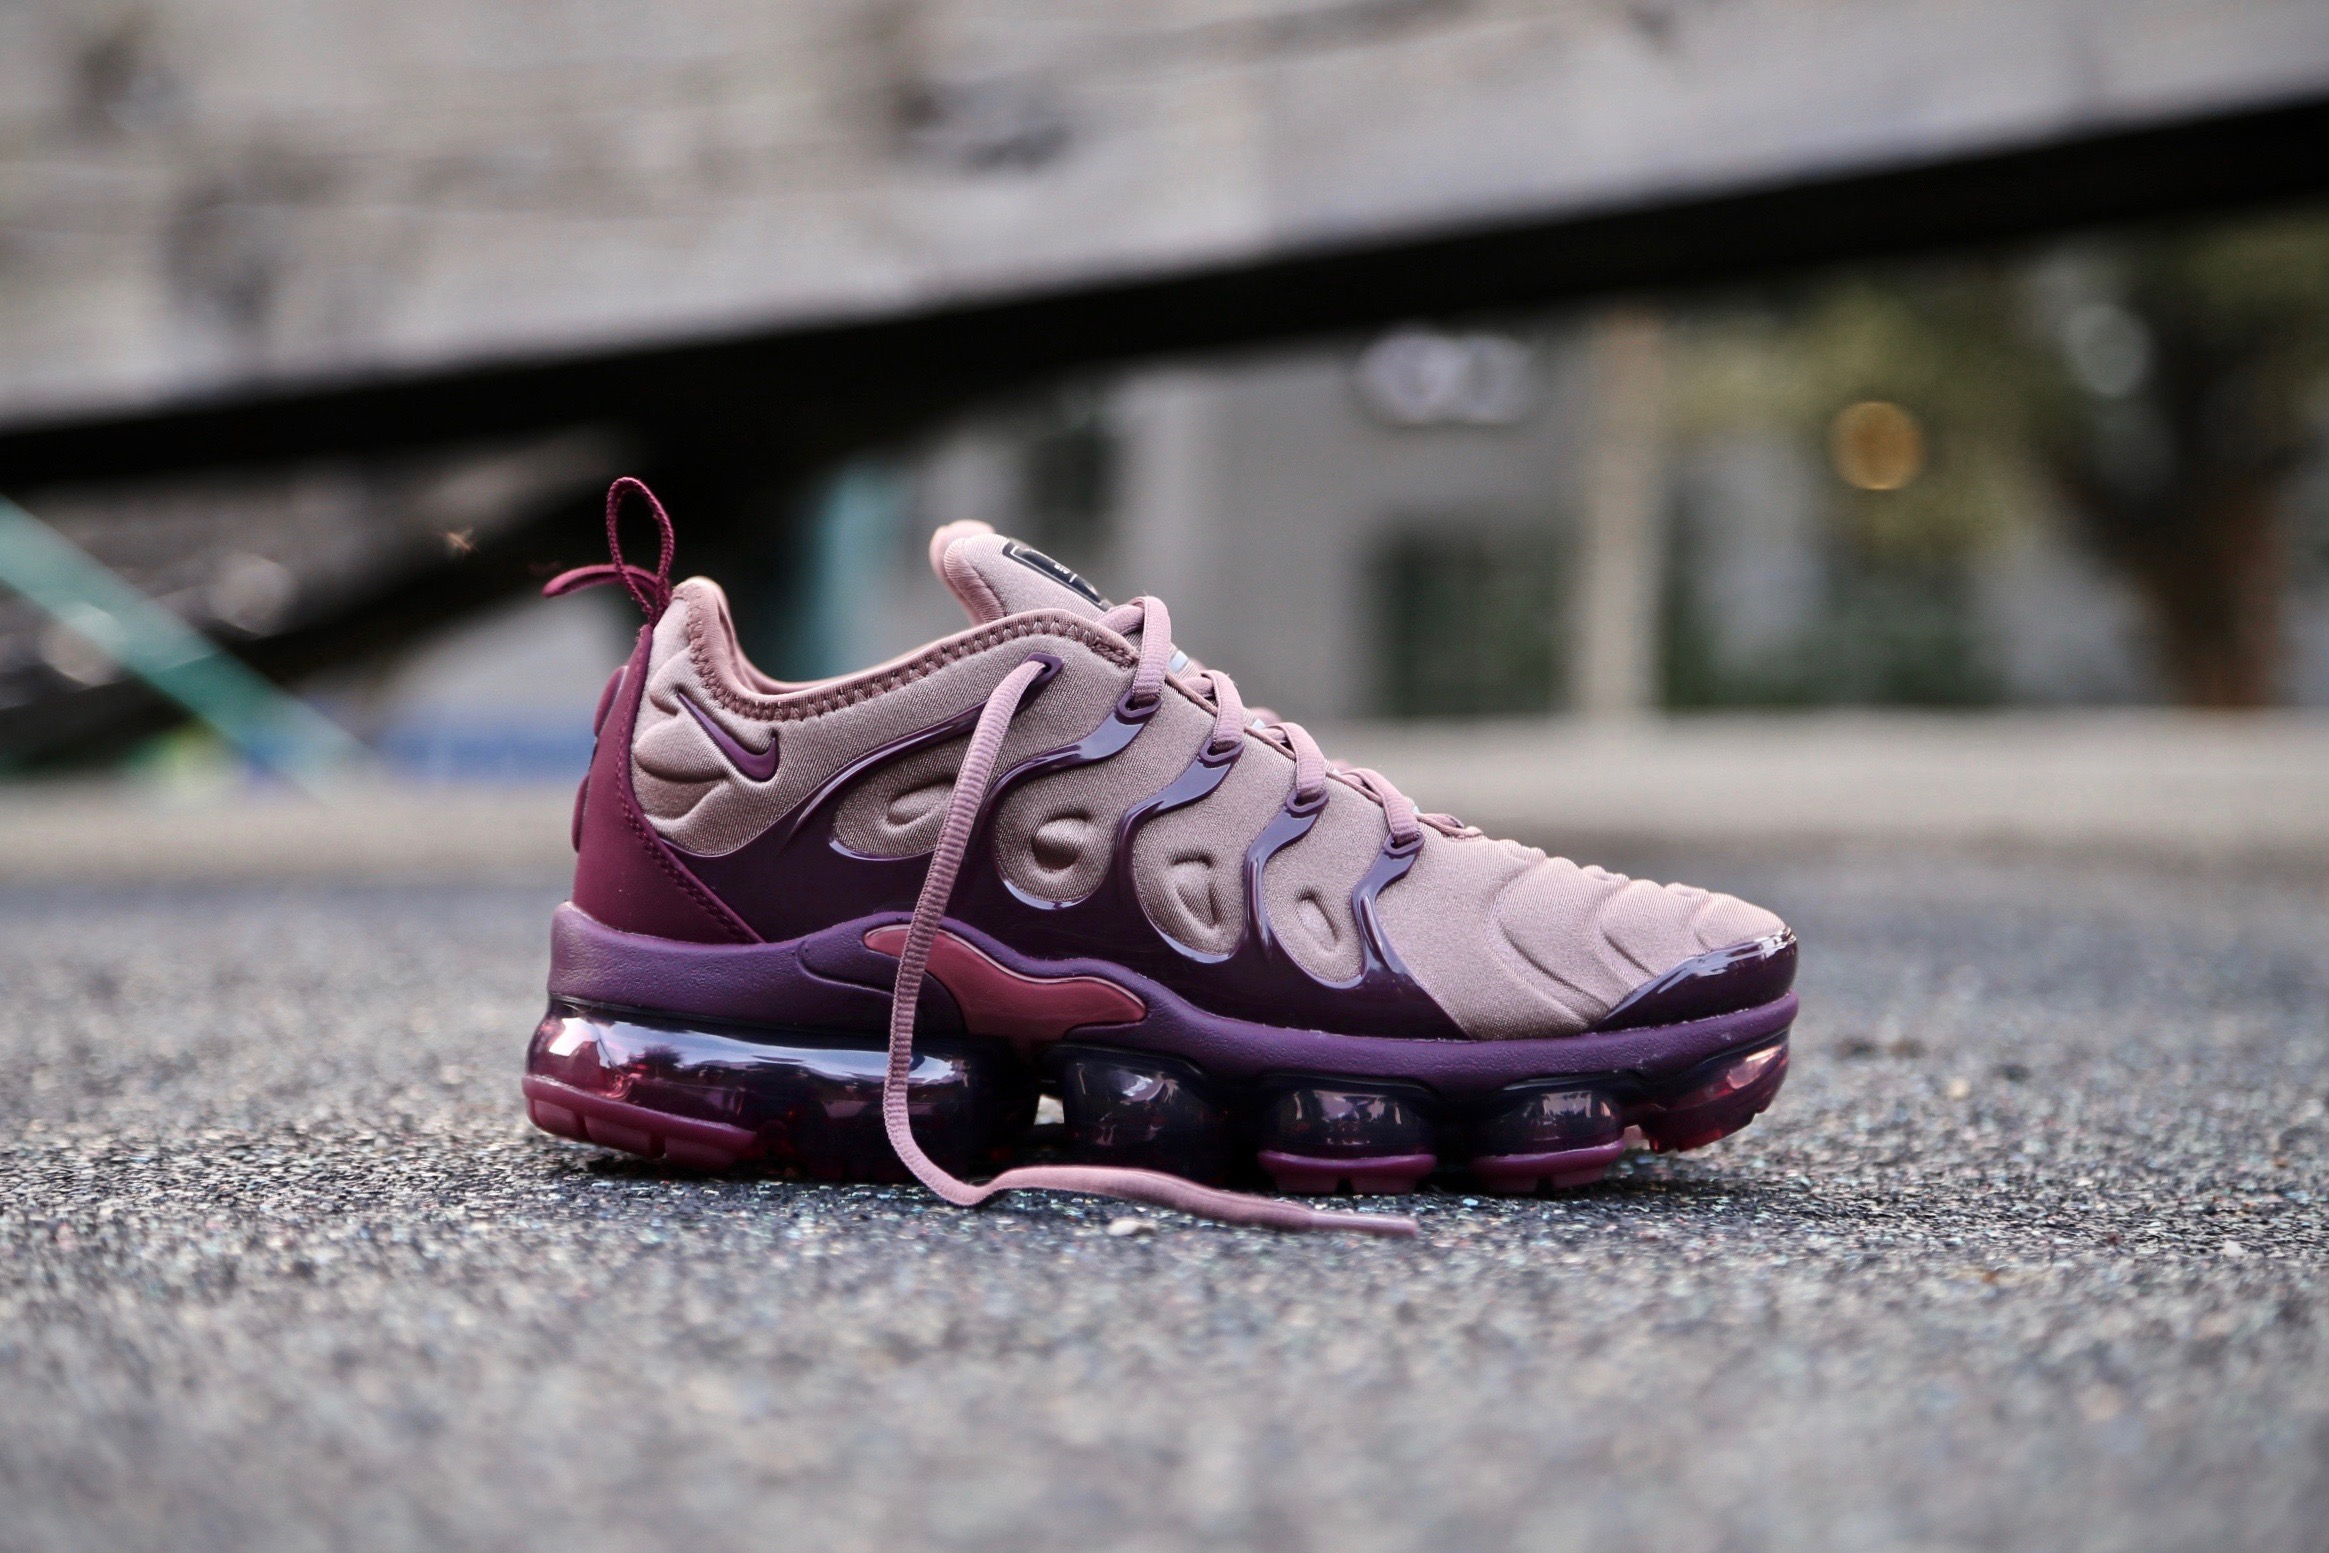 cheaper 0f1a9 da5ce Nike W Air VaporMax Plus - Smokey Mauve / Bordeaux